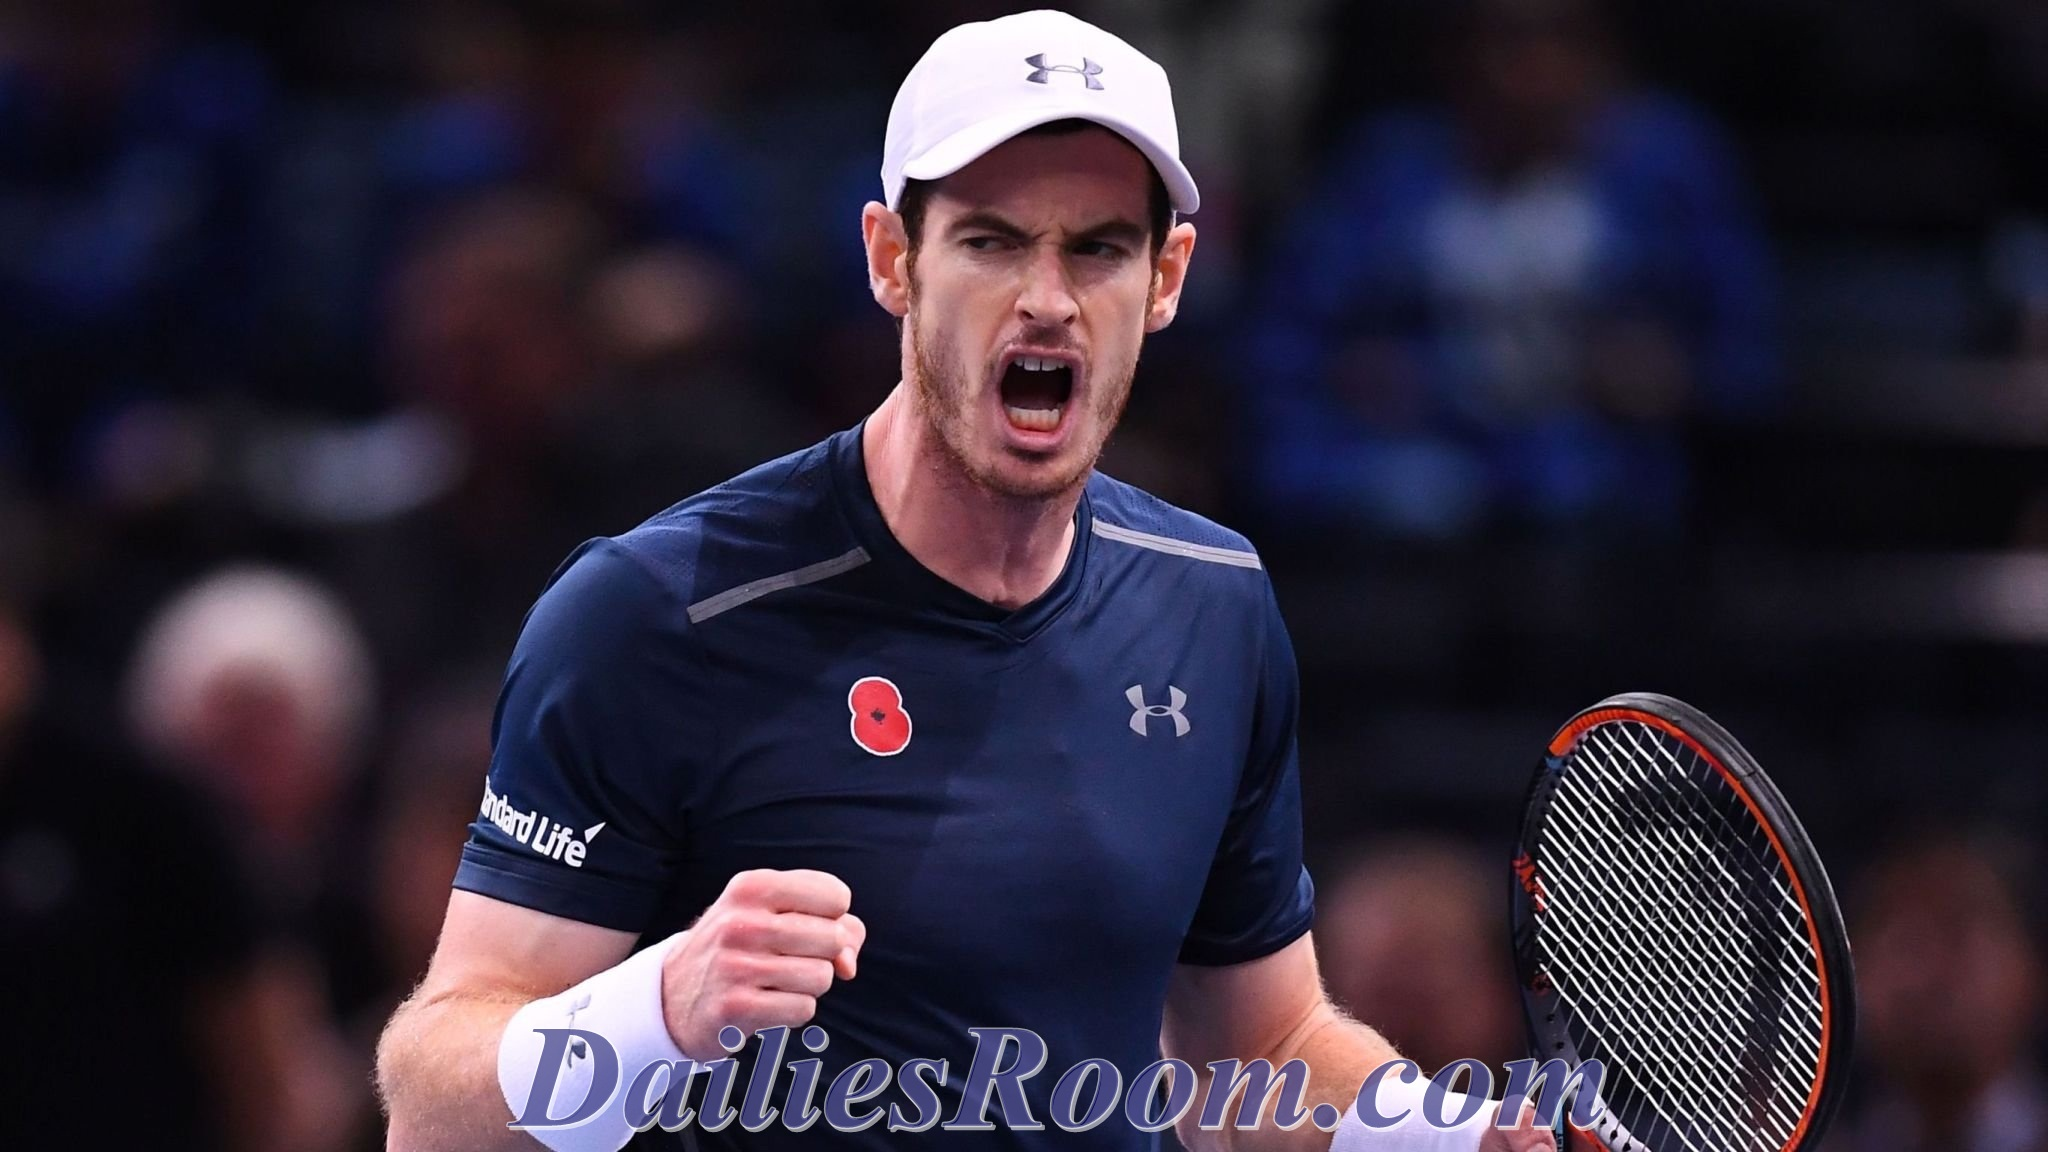 Andy Murray becomes world No 1 After Raonic withdraws | Murray's year-end rankings